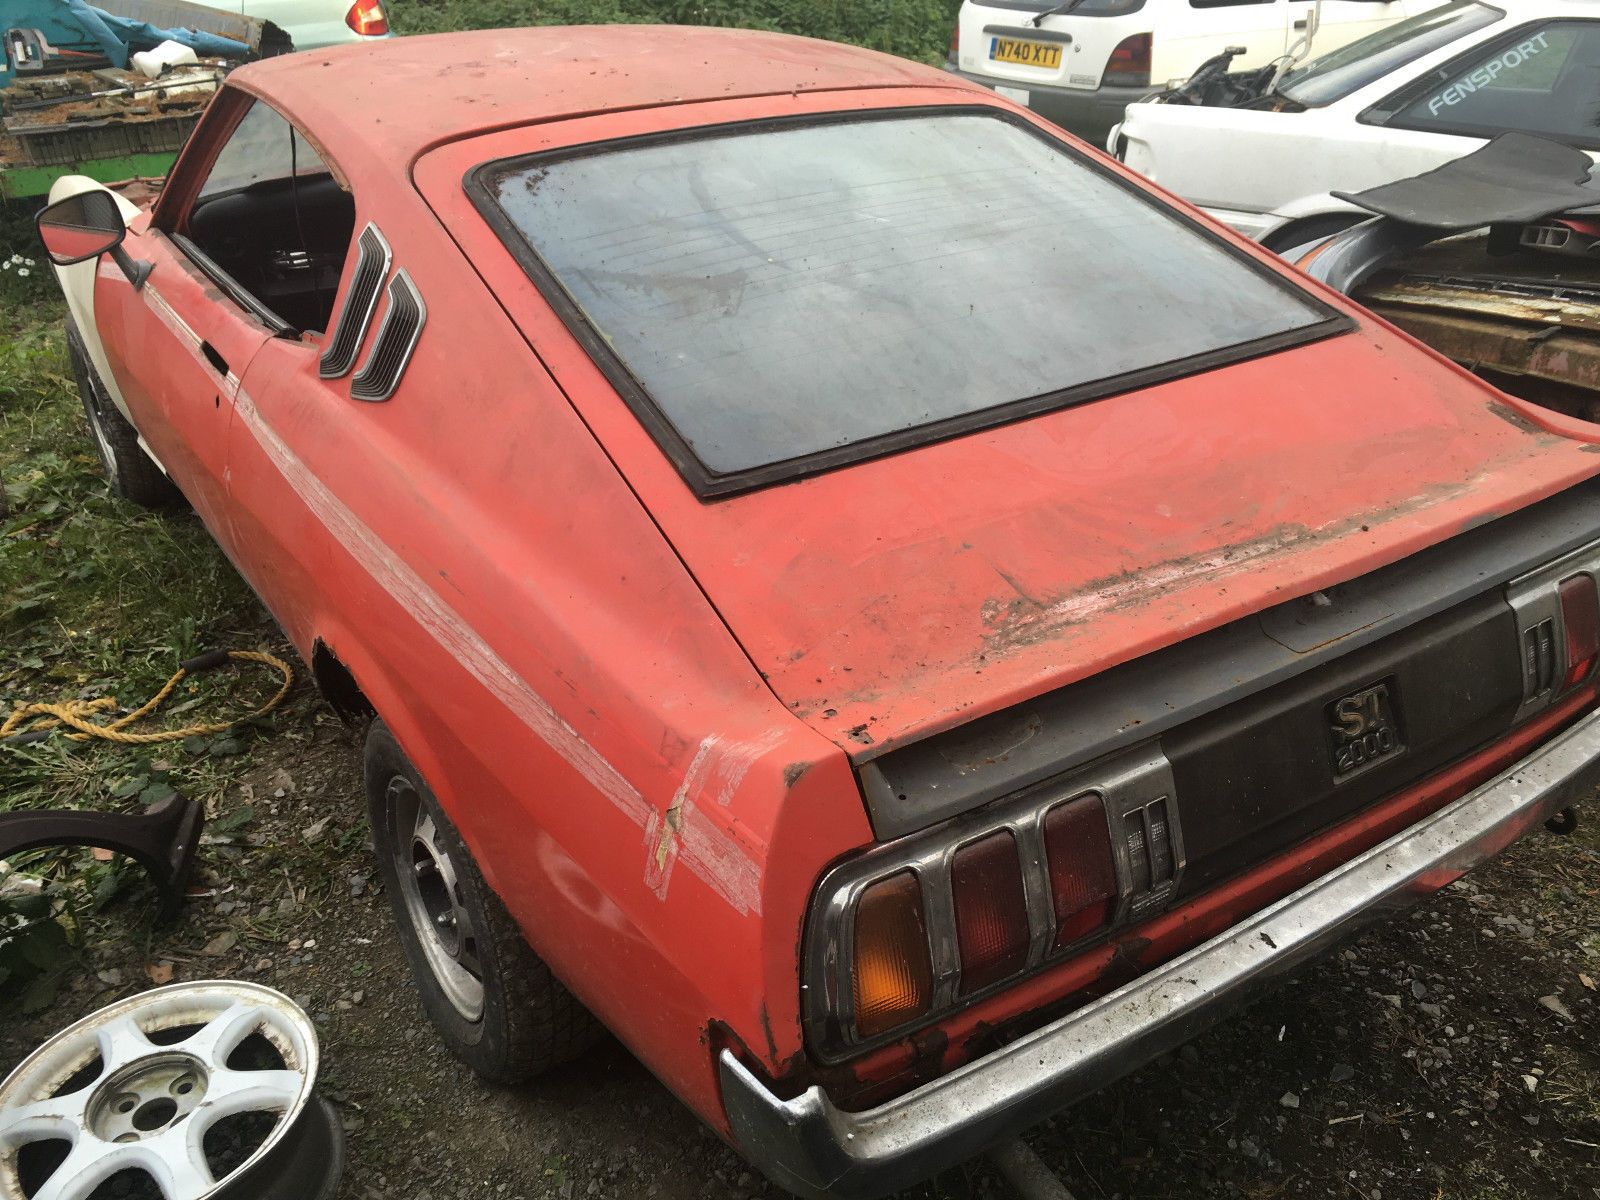 1976 toyota celica ra28 st lift back mustang red restoration project